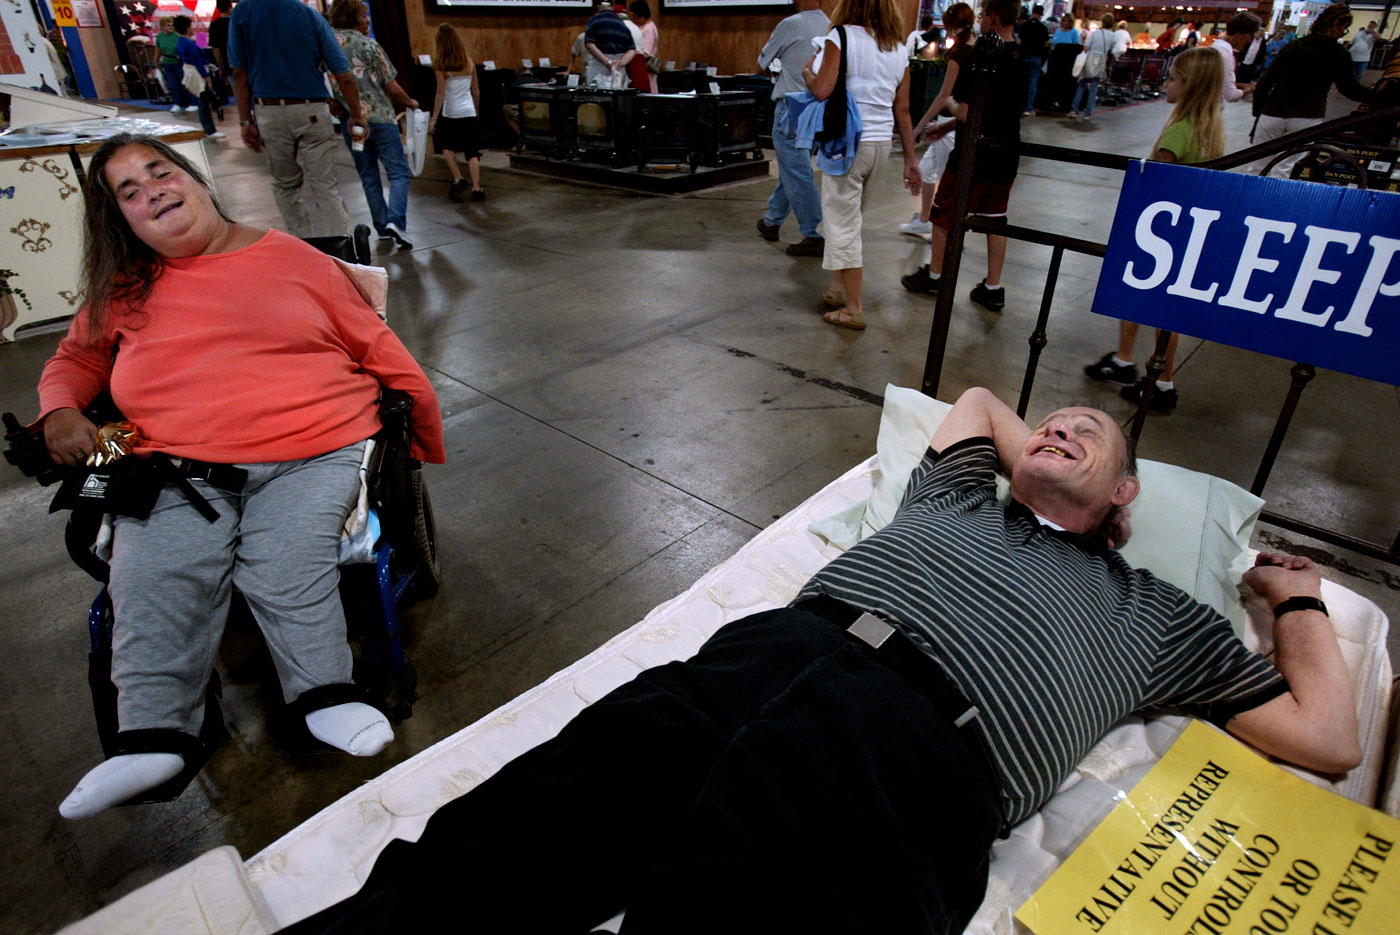 "Theresa Rogenski chuckles at Tom while he kicks back on a bed for sale at The Big E this past fall after a long day walking behind Theresa. At age 64, it can be exhausting for Tom to be on his feet for hours at a time, but as long as he's behind Theresa, he doesn't seem to mind. ""Some people make a big deal about the age difference between us,"" says Tom. ""But we don't give two hoots about age. Age is just a number."""